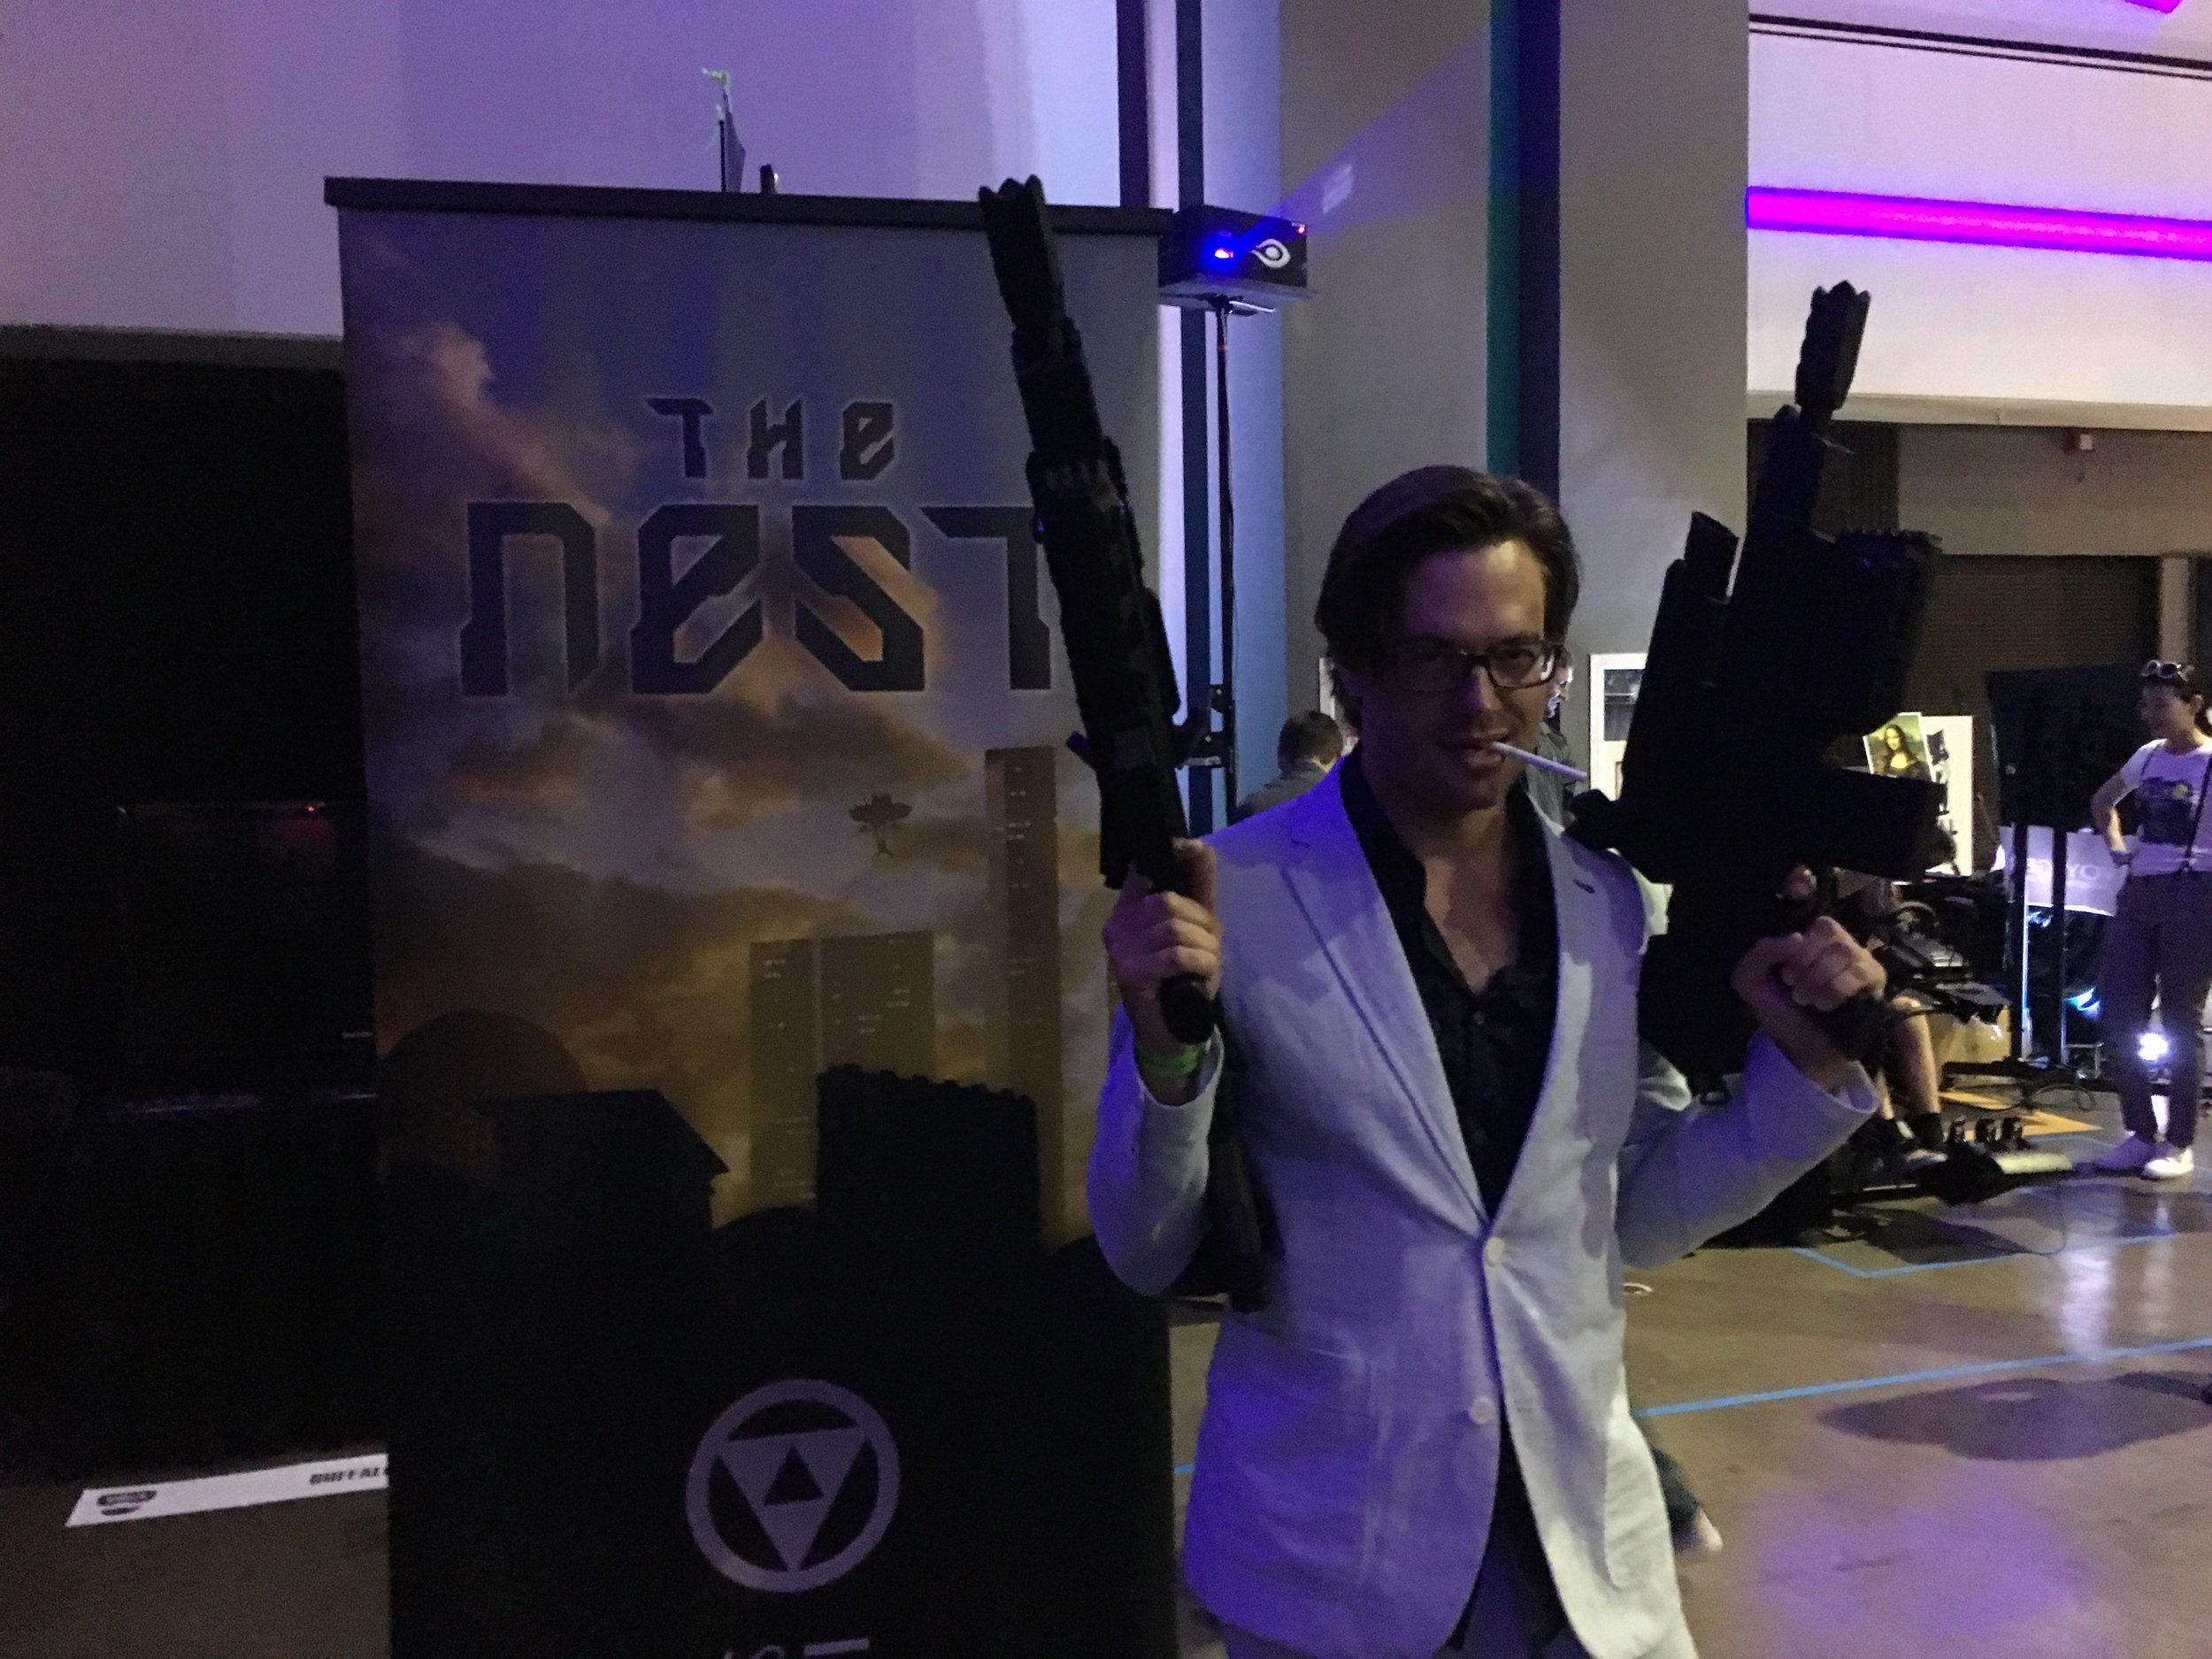 Hunter with the VRsenal guns in front of The Nest display at VRLA